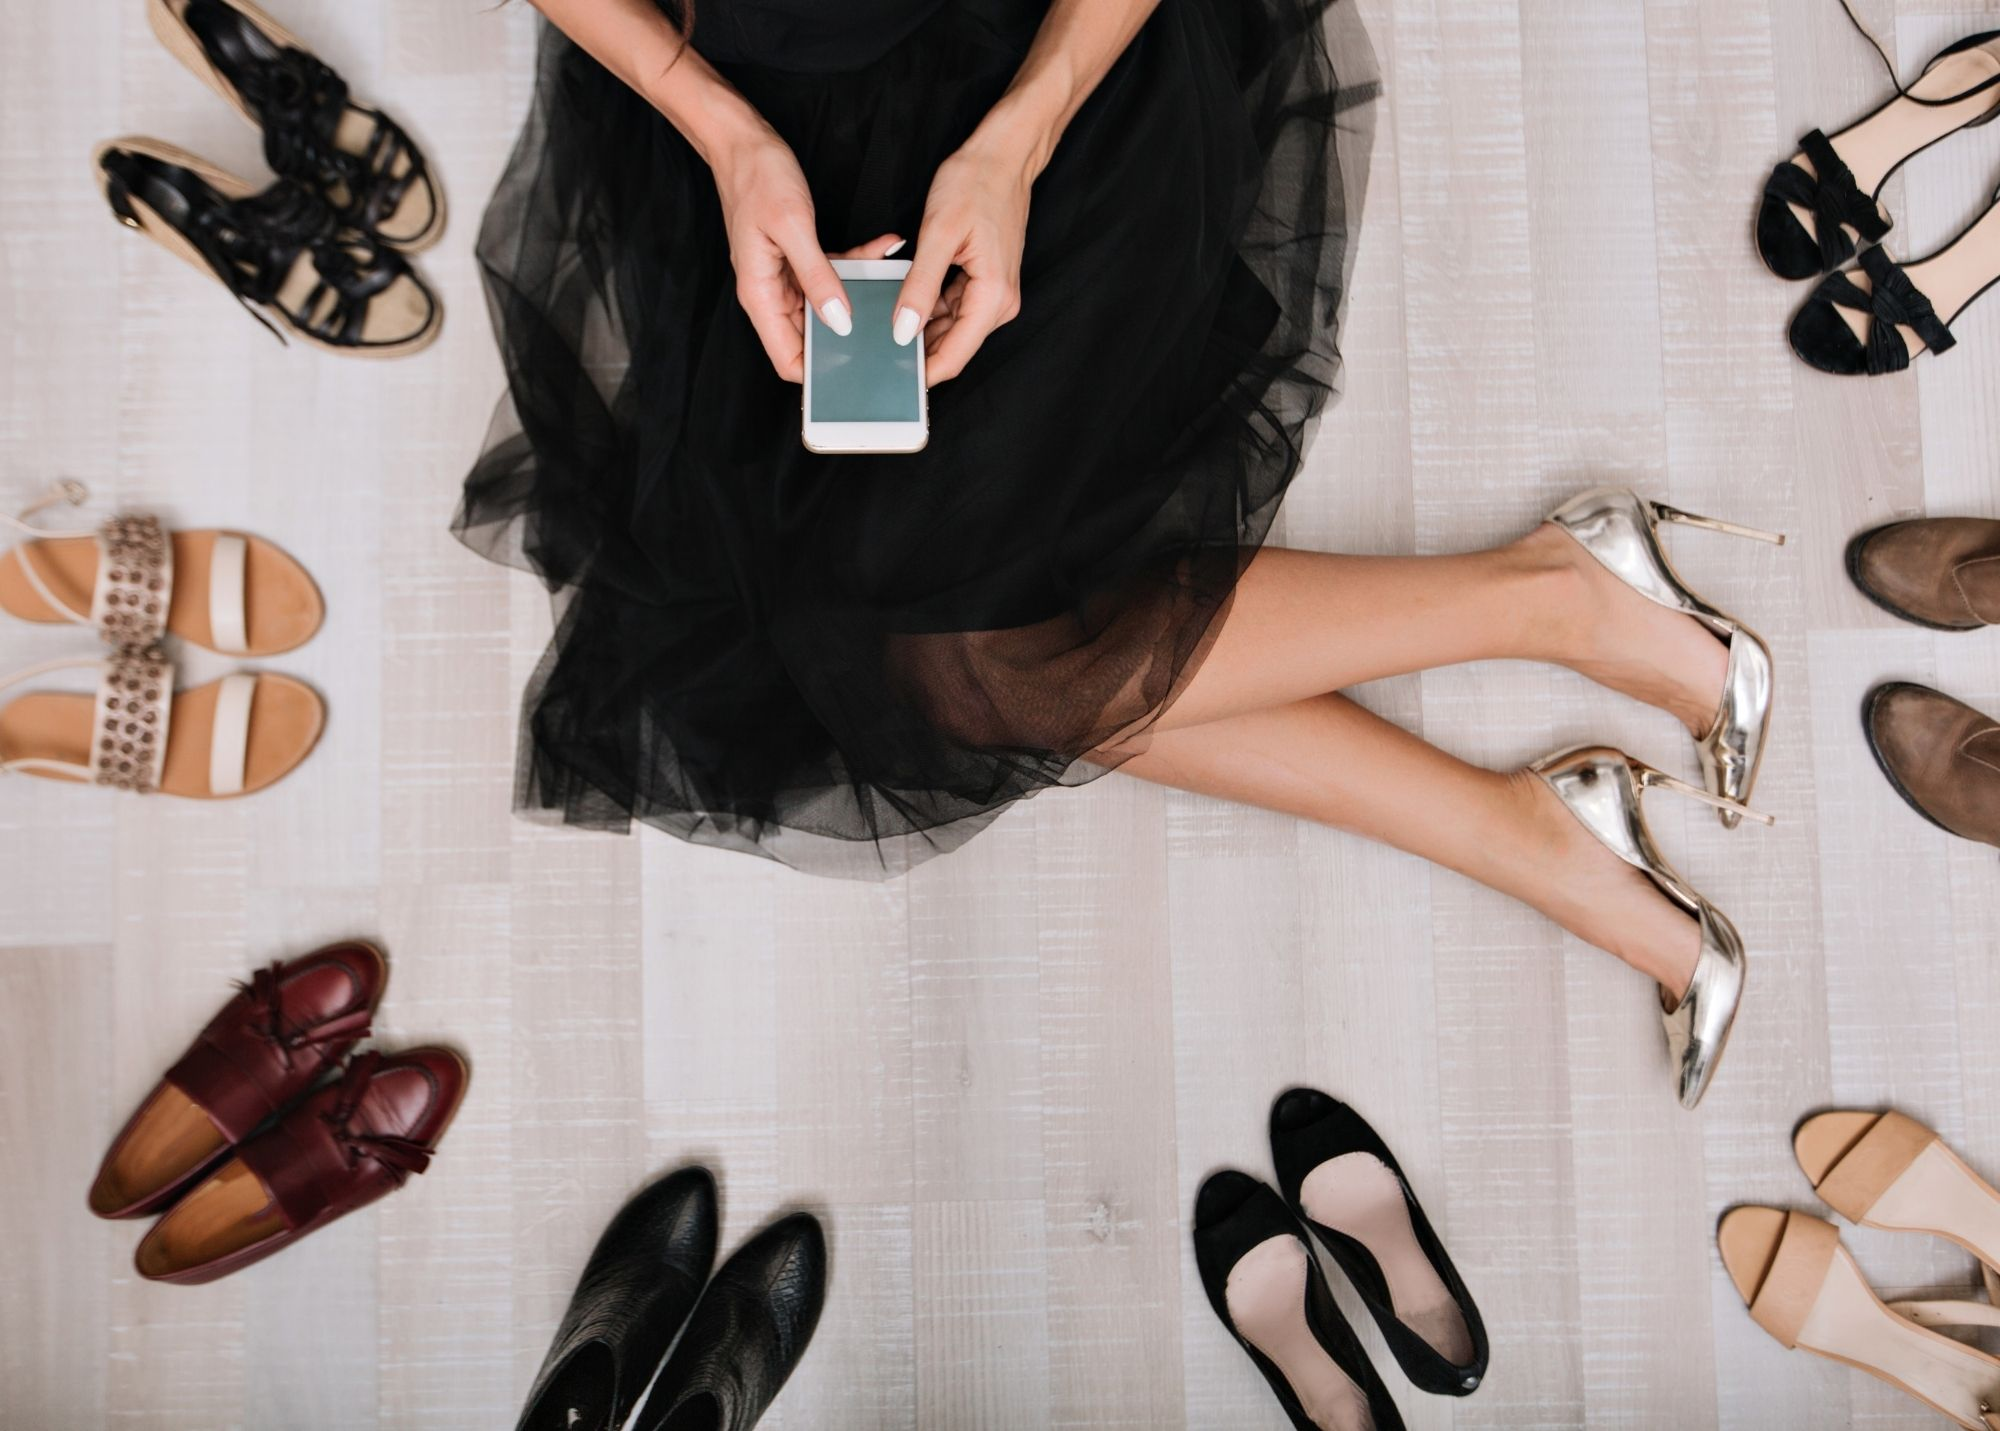 ATC | 7 SG Luxury Influencers Who Are All About High-Fashion FT IMG